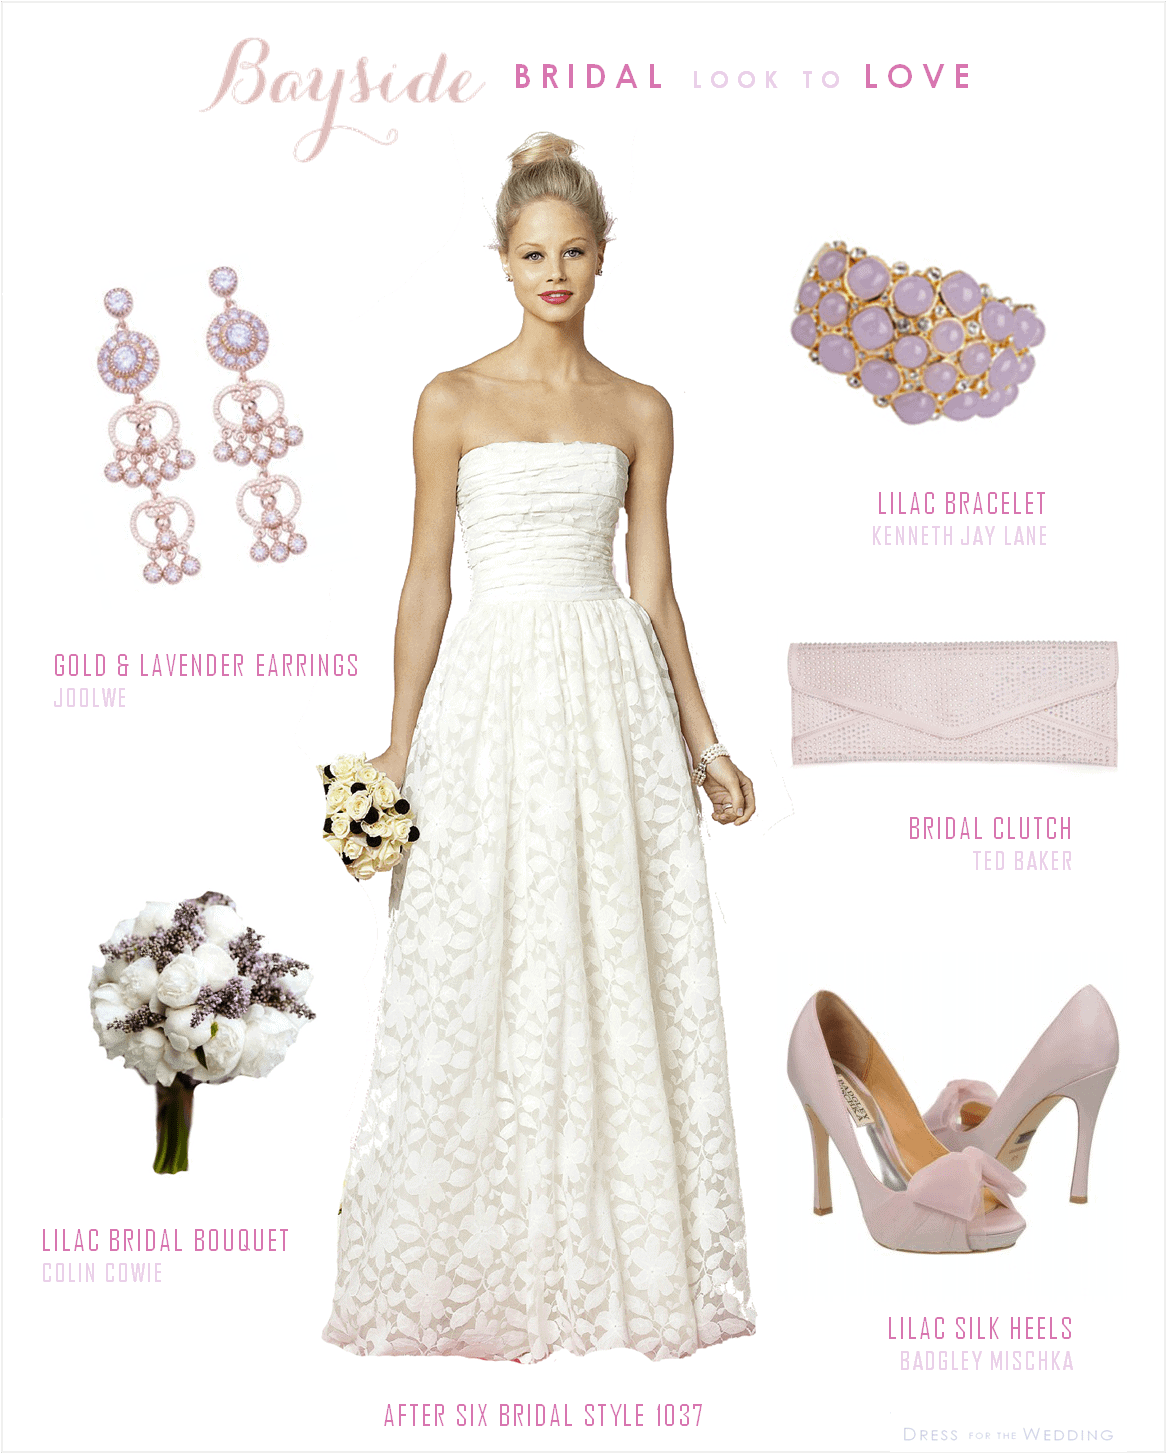 Lace Wedding Dress Accessories : Lace wedding dress with lavender accessories